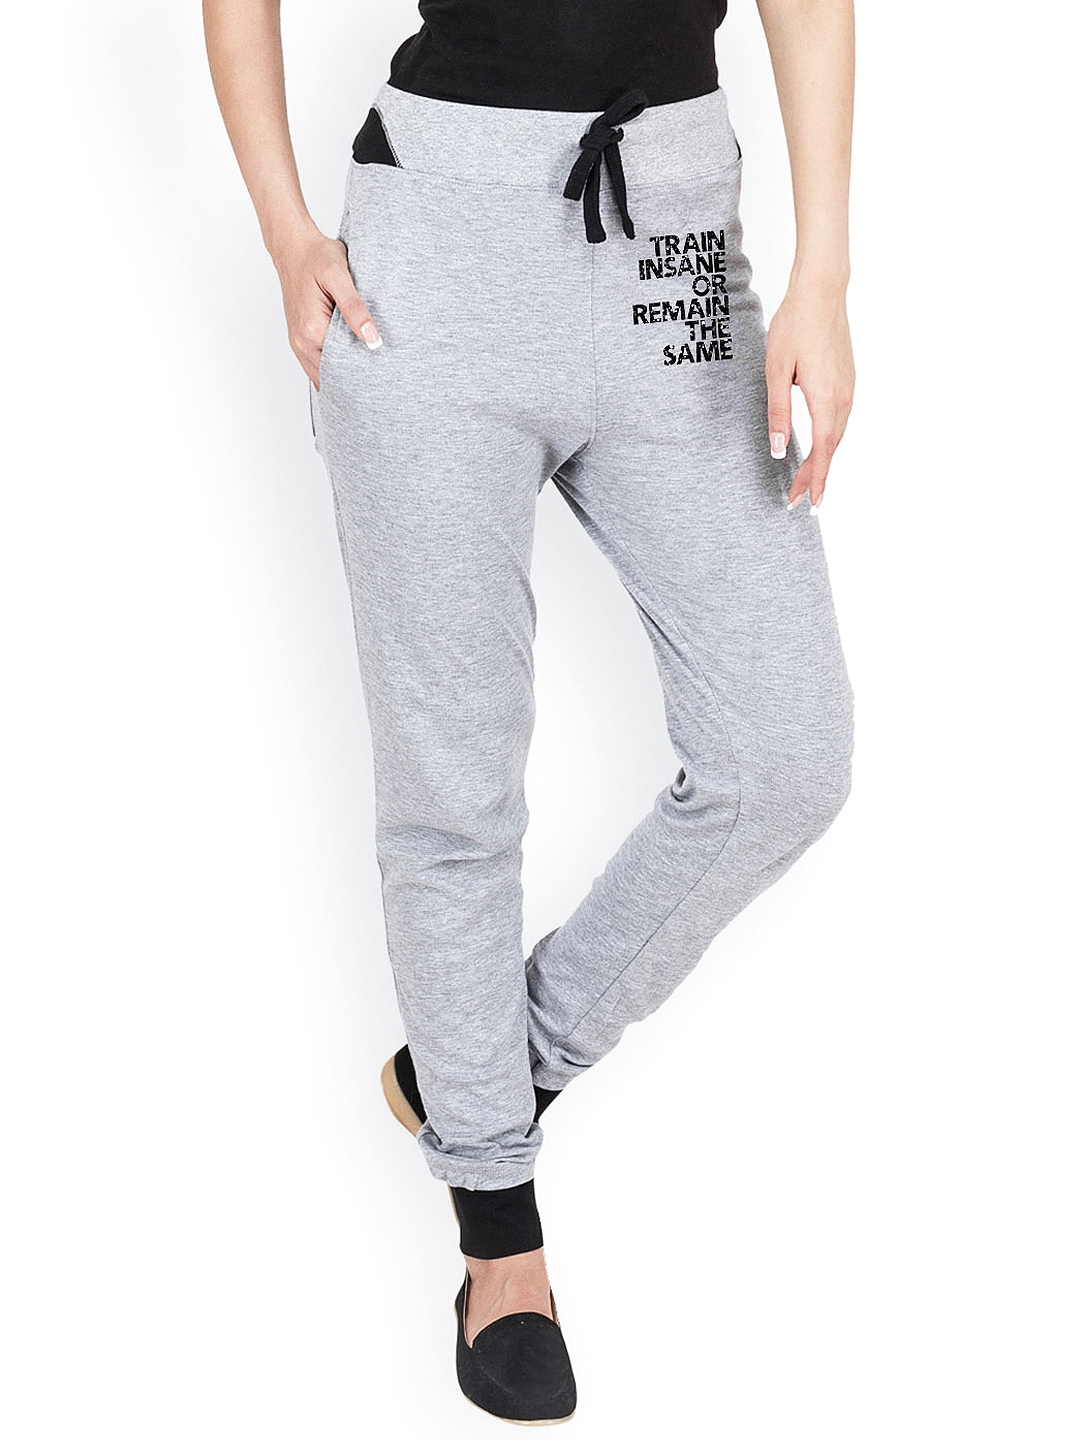 Awesome Enter Pincode For Accurate Delivery Details Fashion Wing Is A Renowned Indian Clothing Brand Offering A Wide Collection Of High Quality Women Clothing  Specialising In Womens Track Pants Of Many Stylish Design Range ,variety Of Colors,and